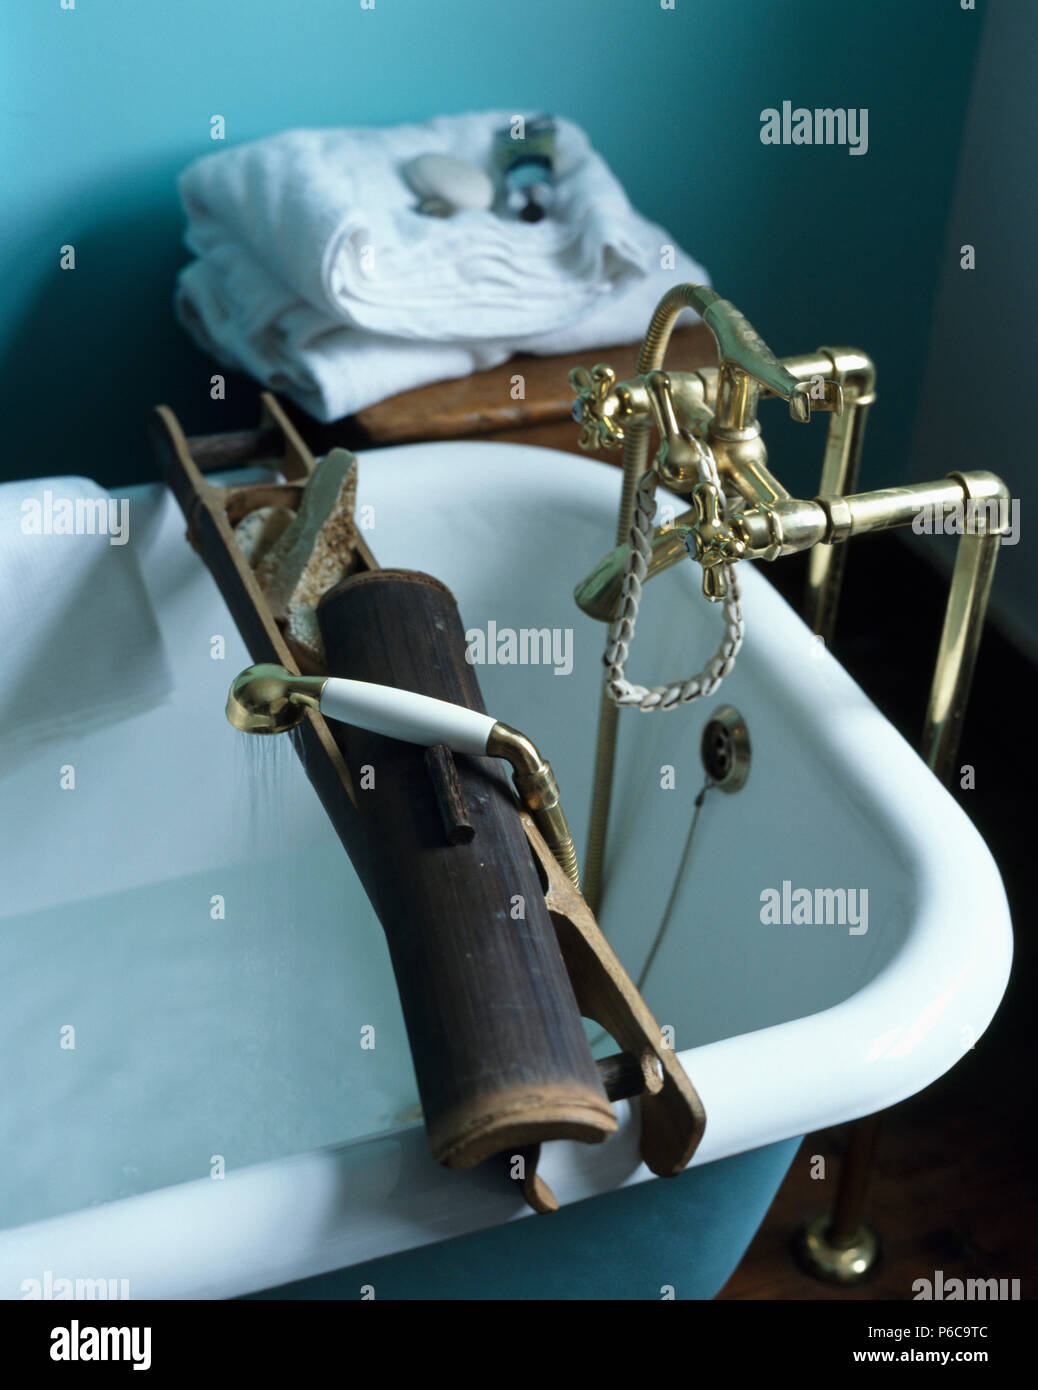 Bath Taps Stock Photos & Bath Taps Stock Images - Alamy